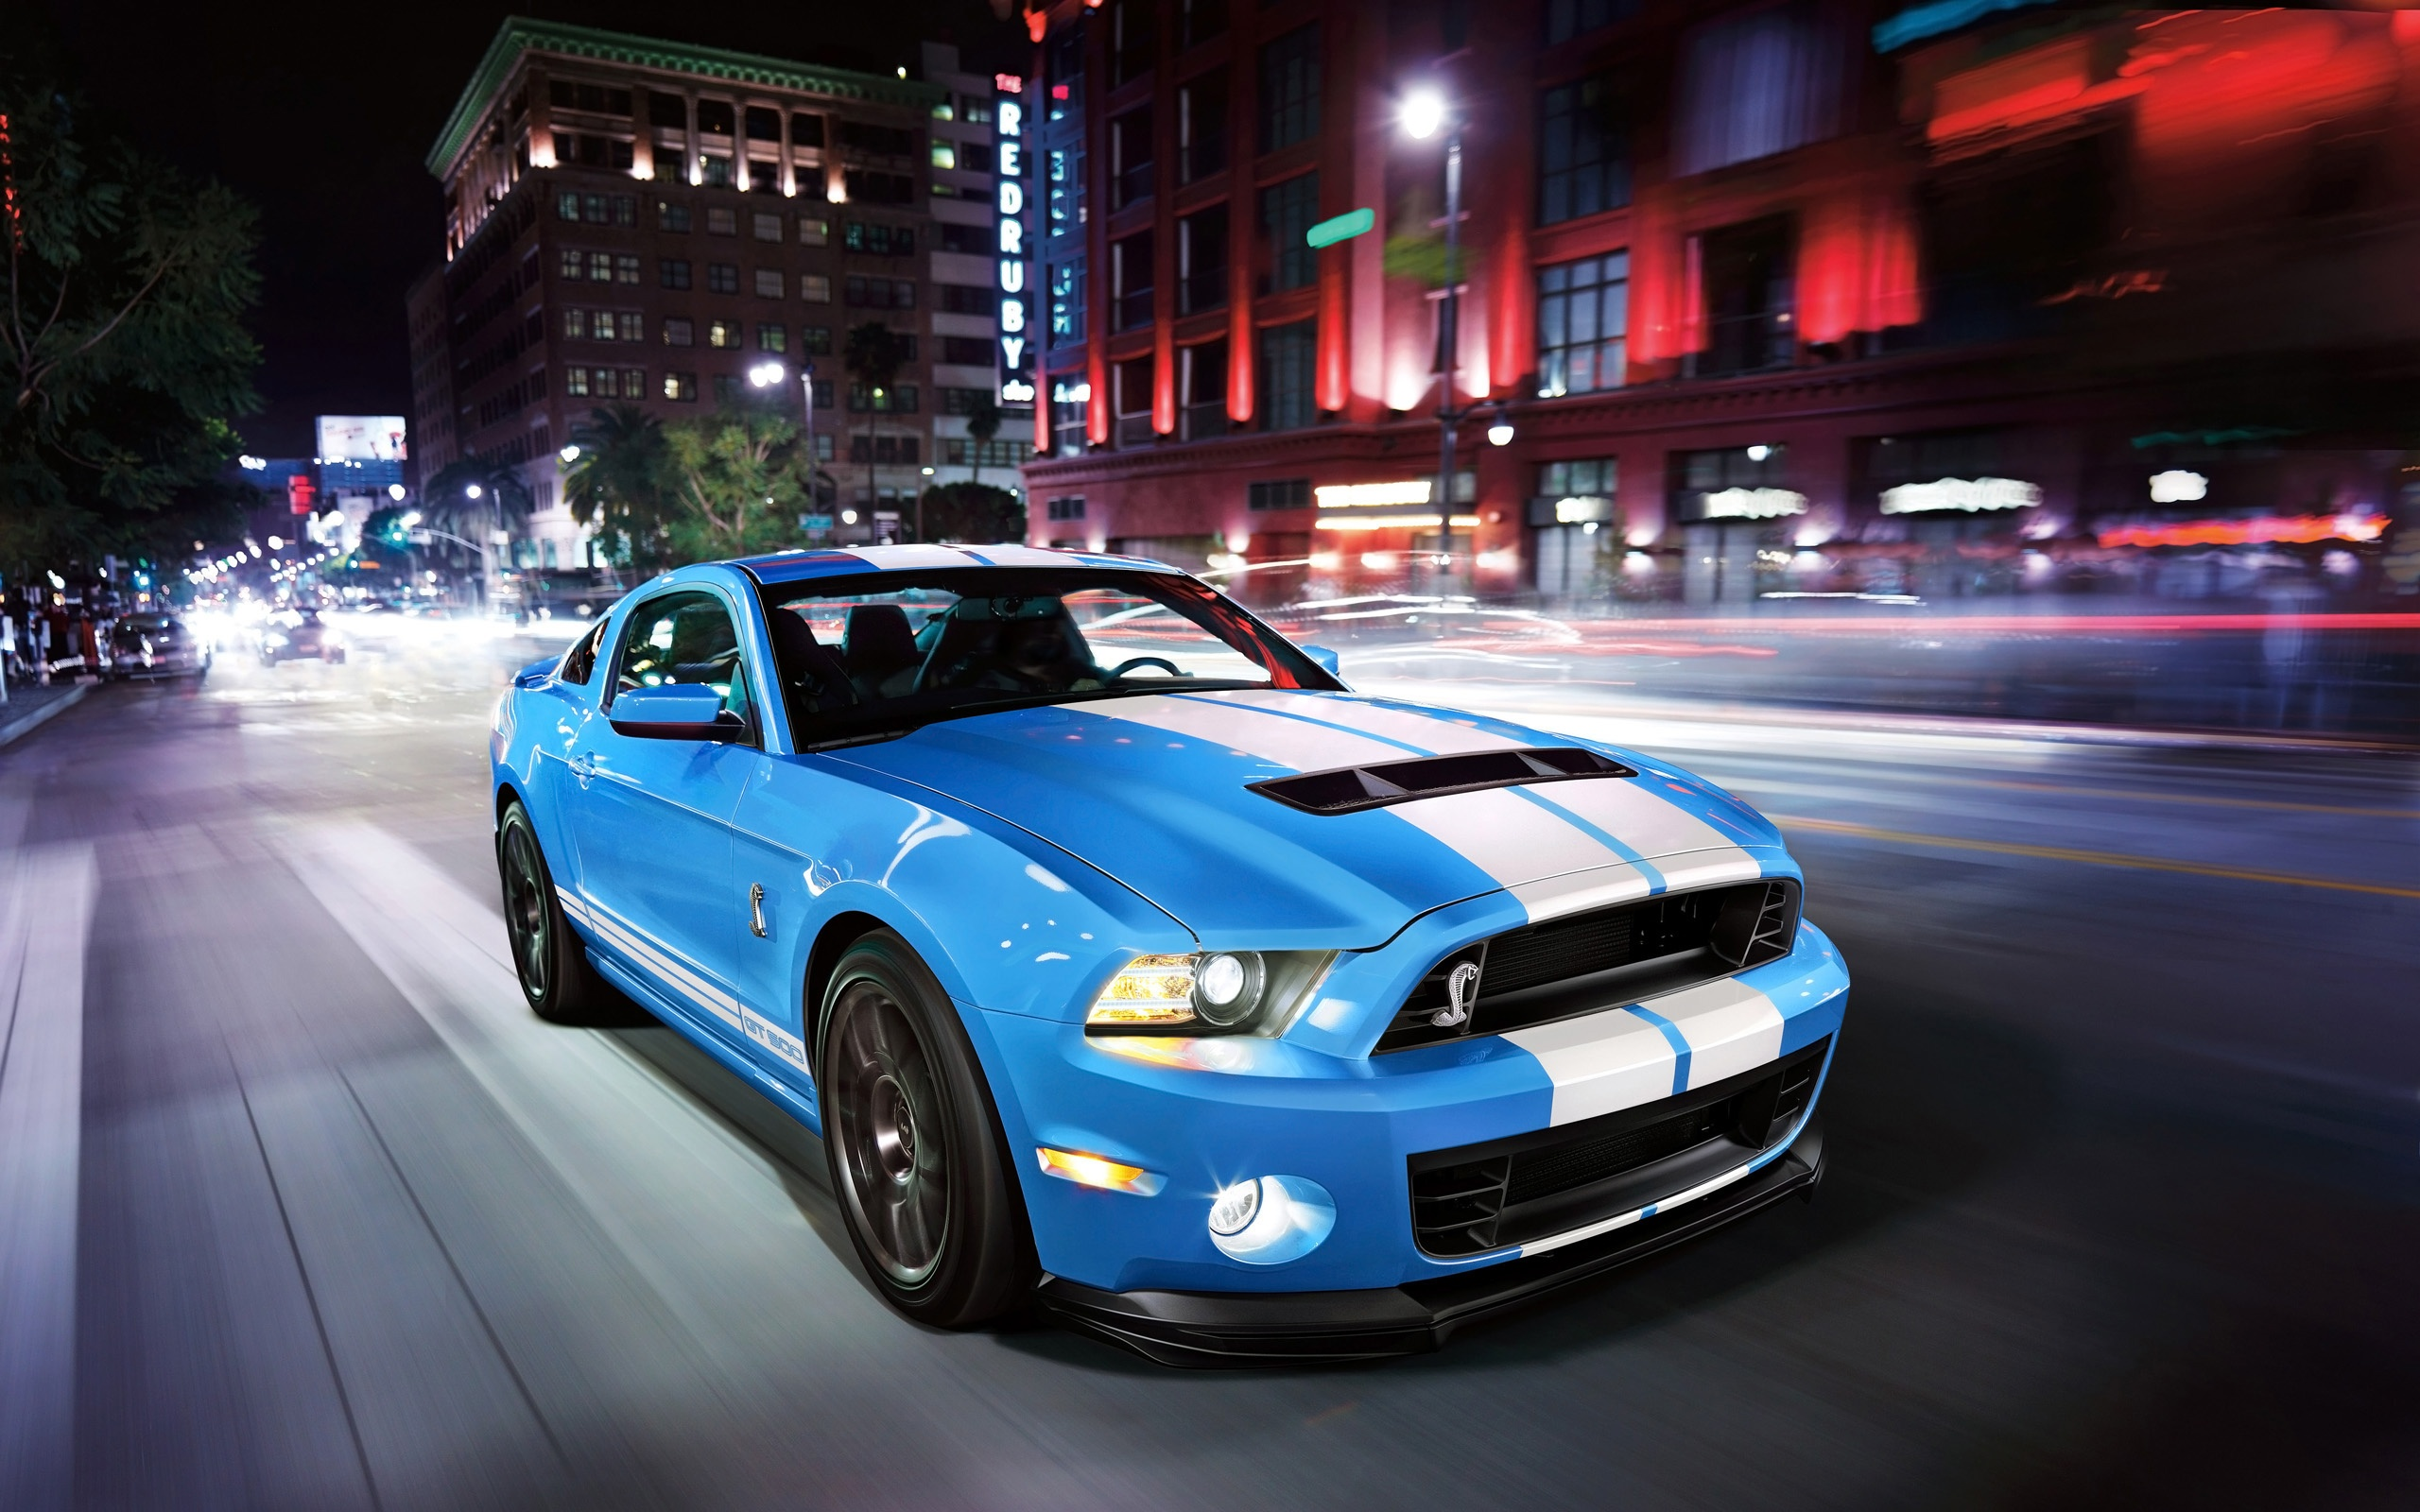 Ford Shelby Gt500 2014 Wallpapers In Jpg Format For Free Download